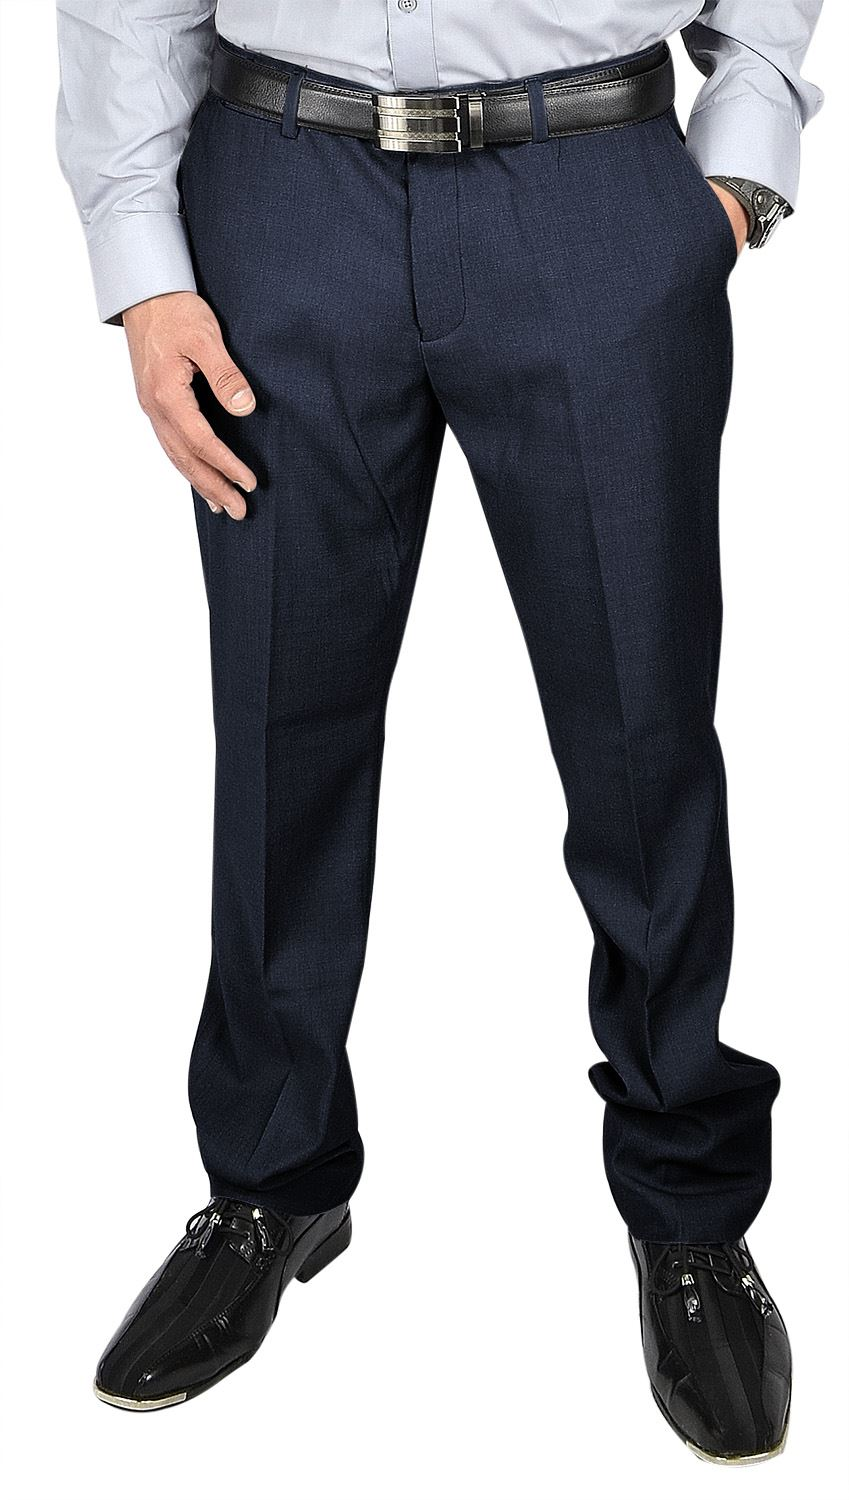 Moda Di Raza- Men's Pants Fashion Formal Business Wedding Dress Pants - Navy-Size: 30x30